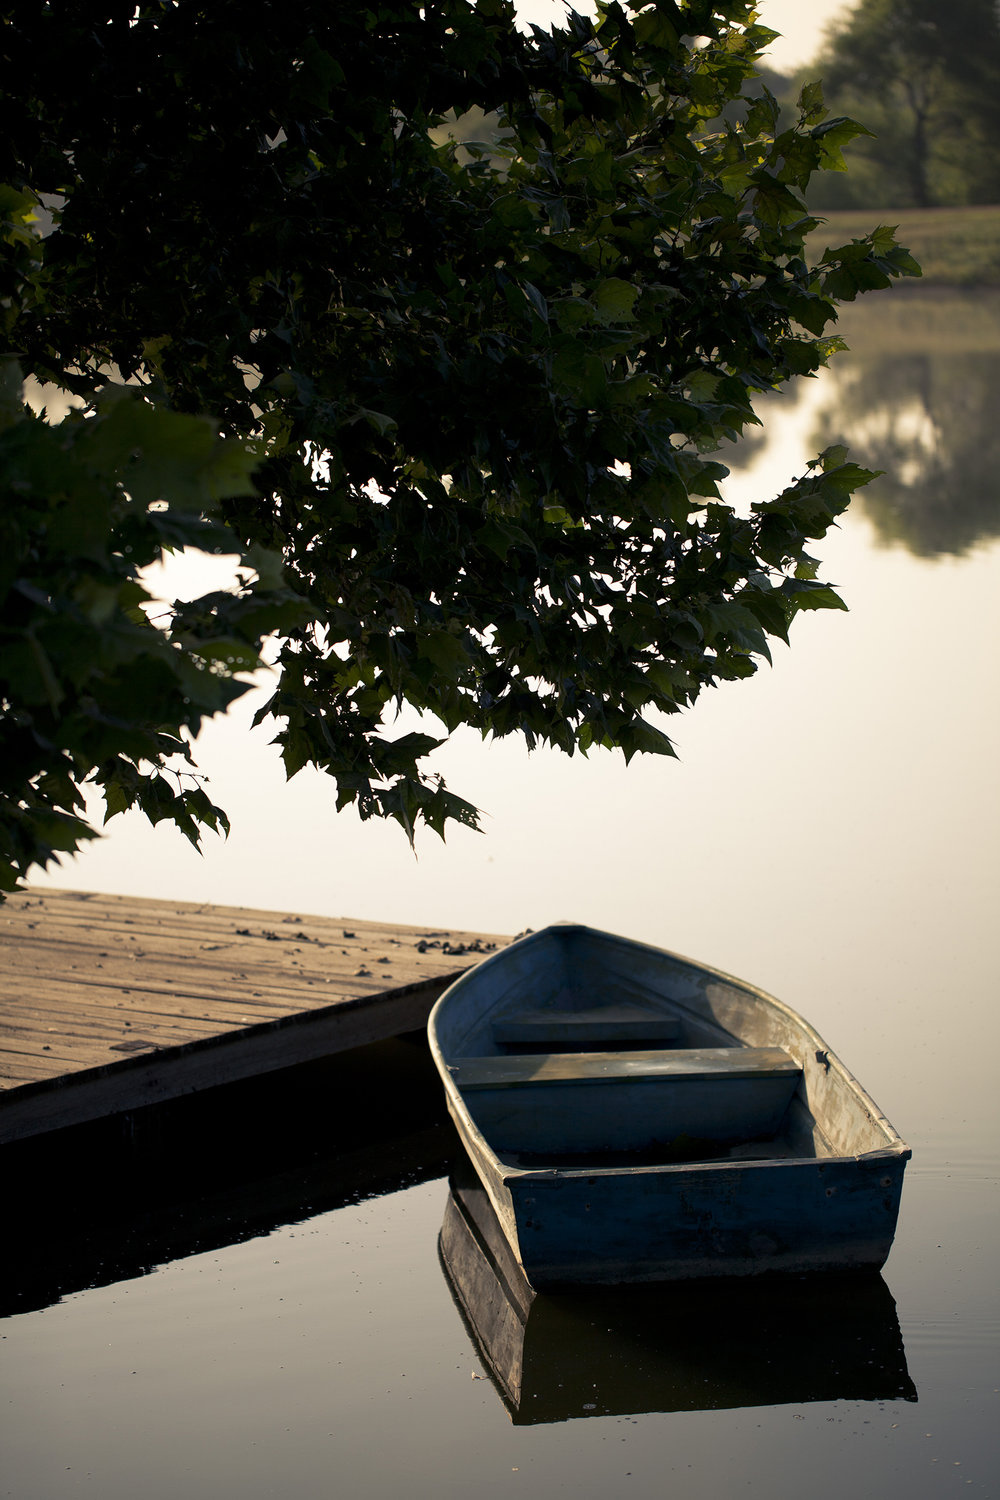 An antique boat docked at StarHill Pond